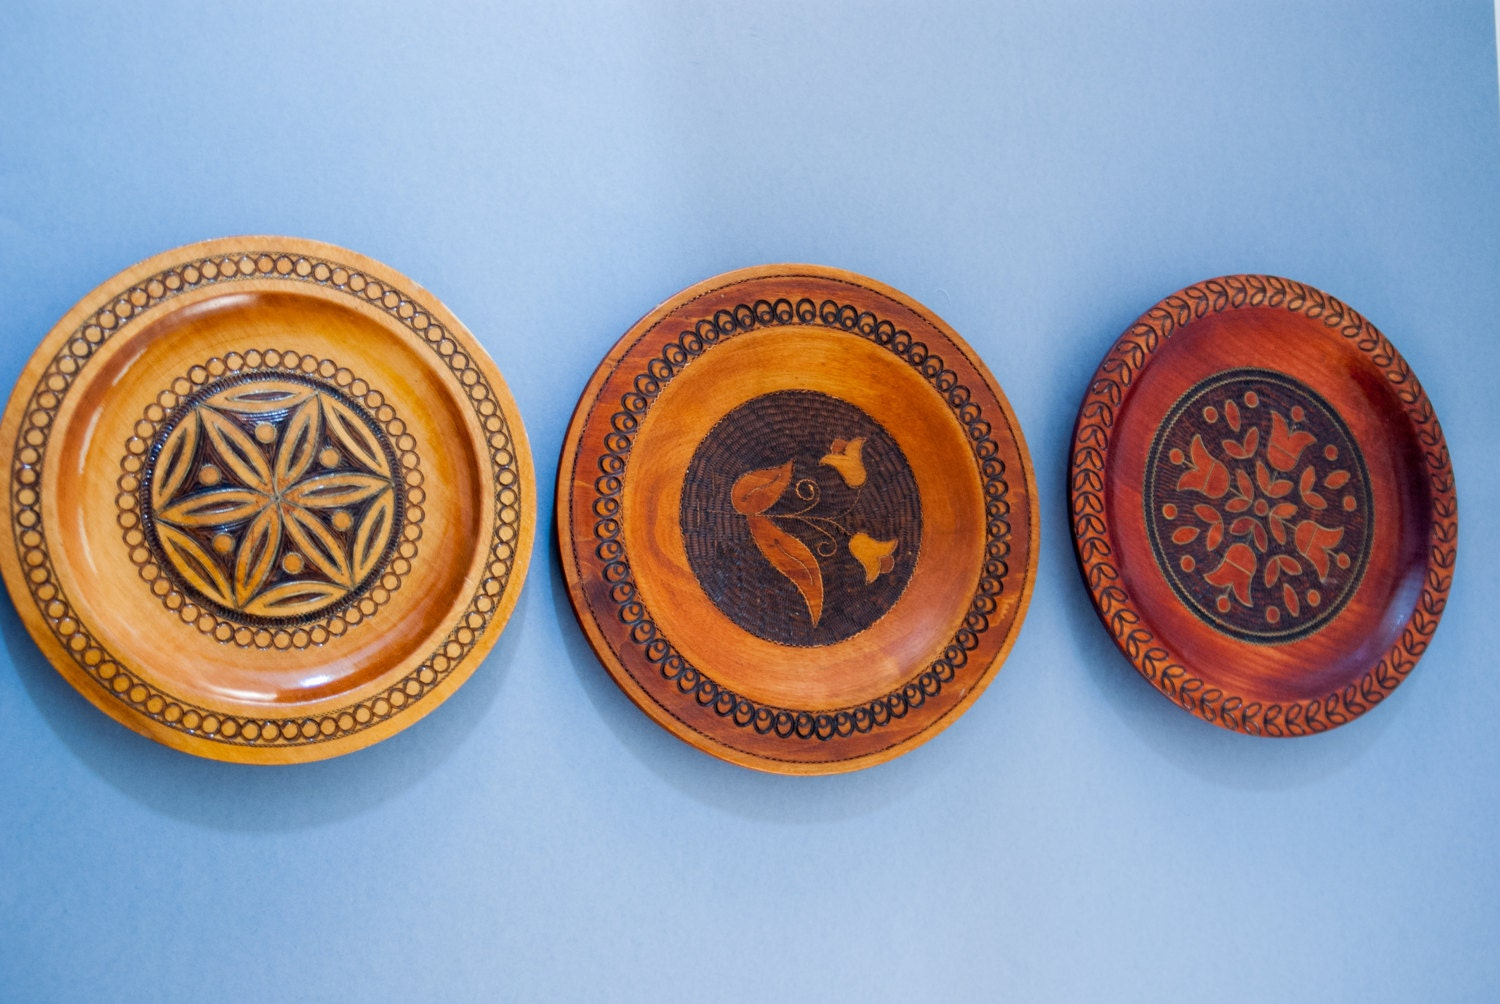 Decorative Wall Plates : Decorative wooden plates set wall hanging plate vintage